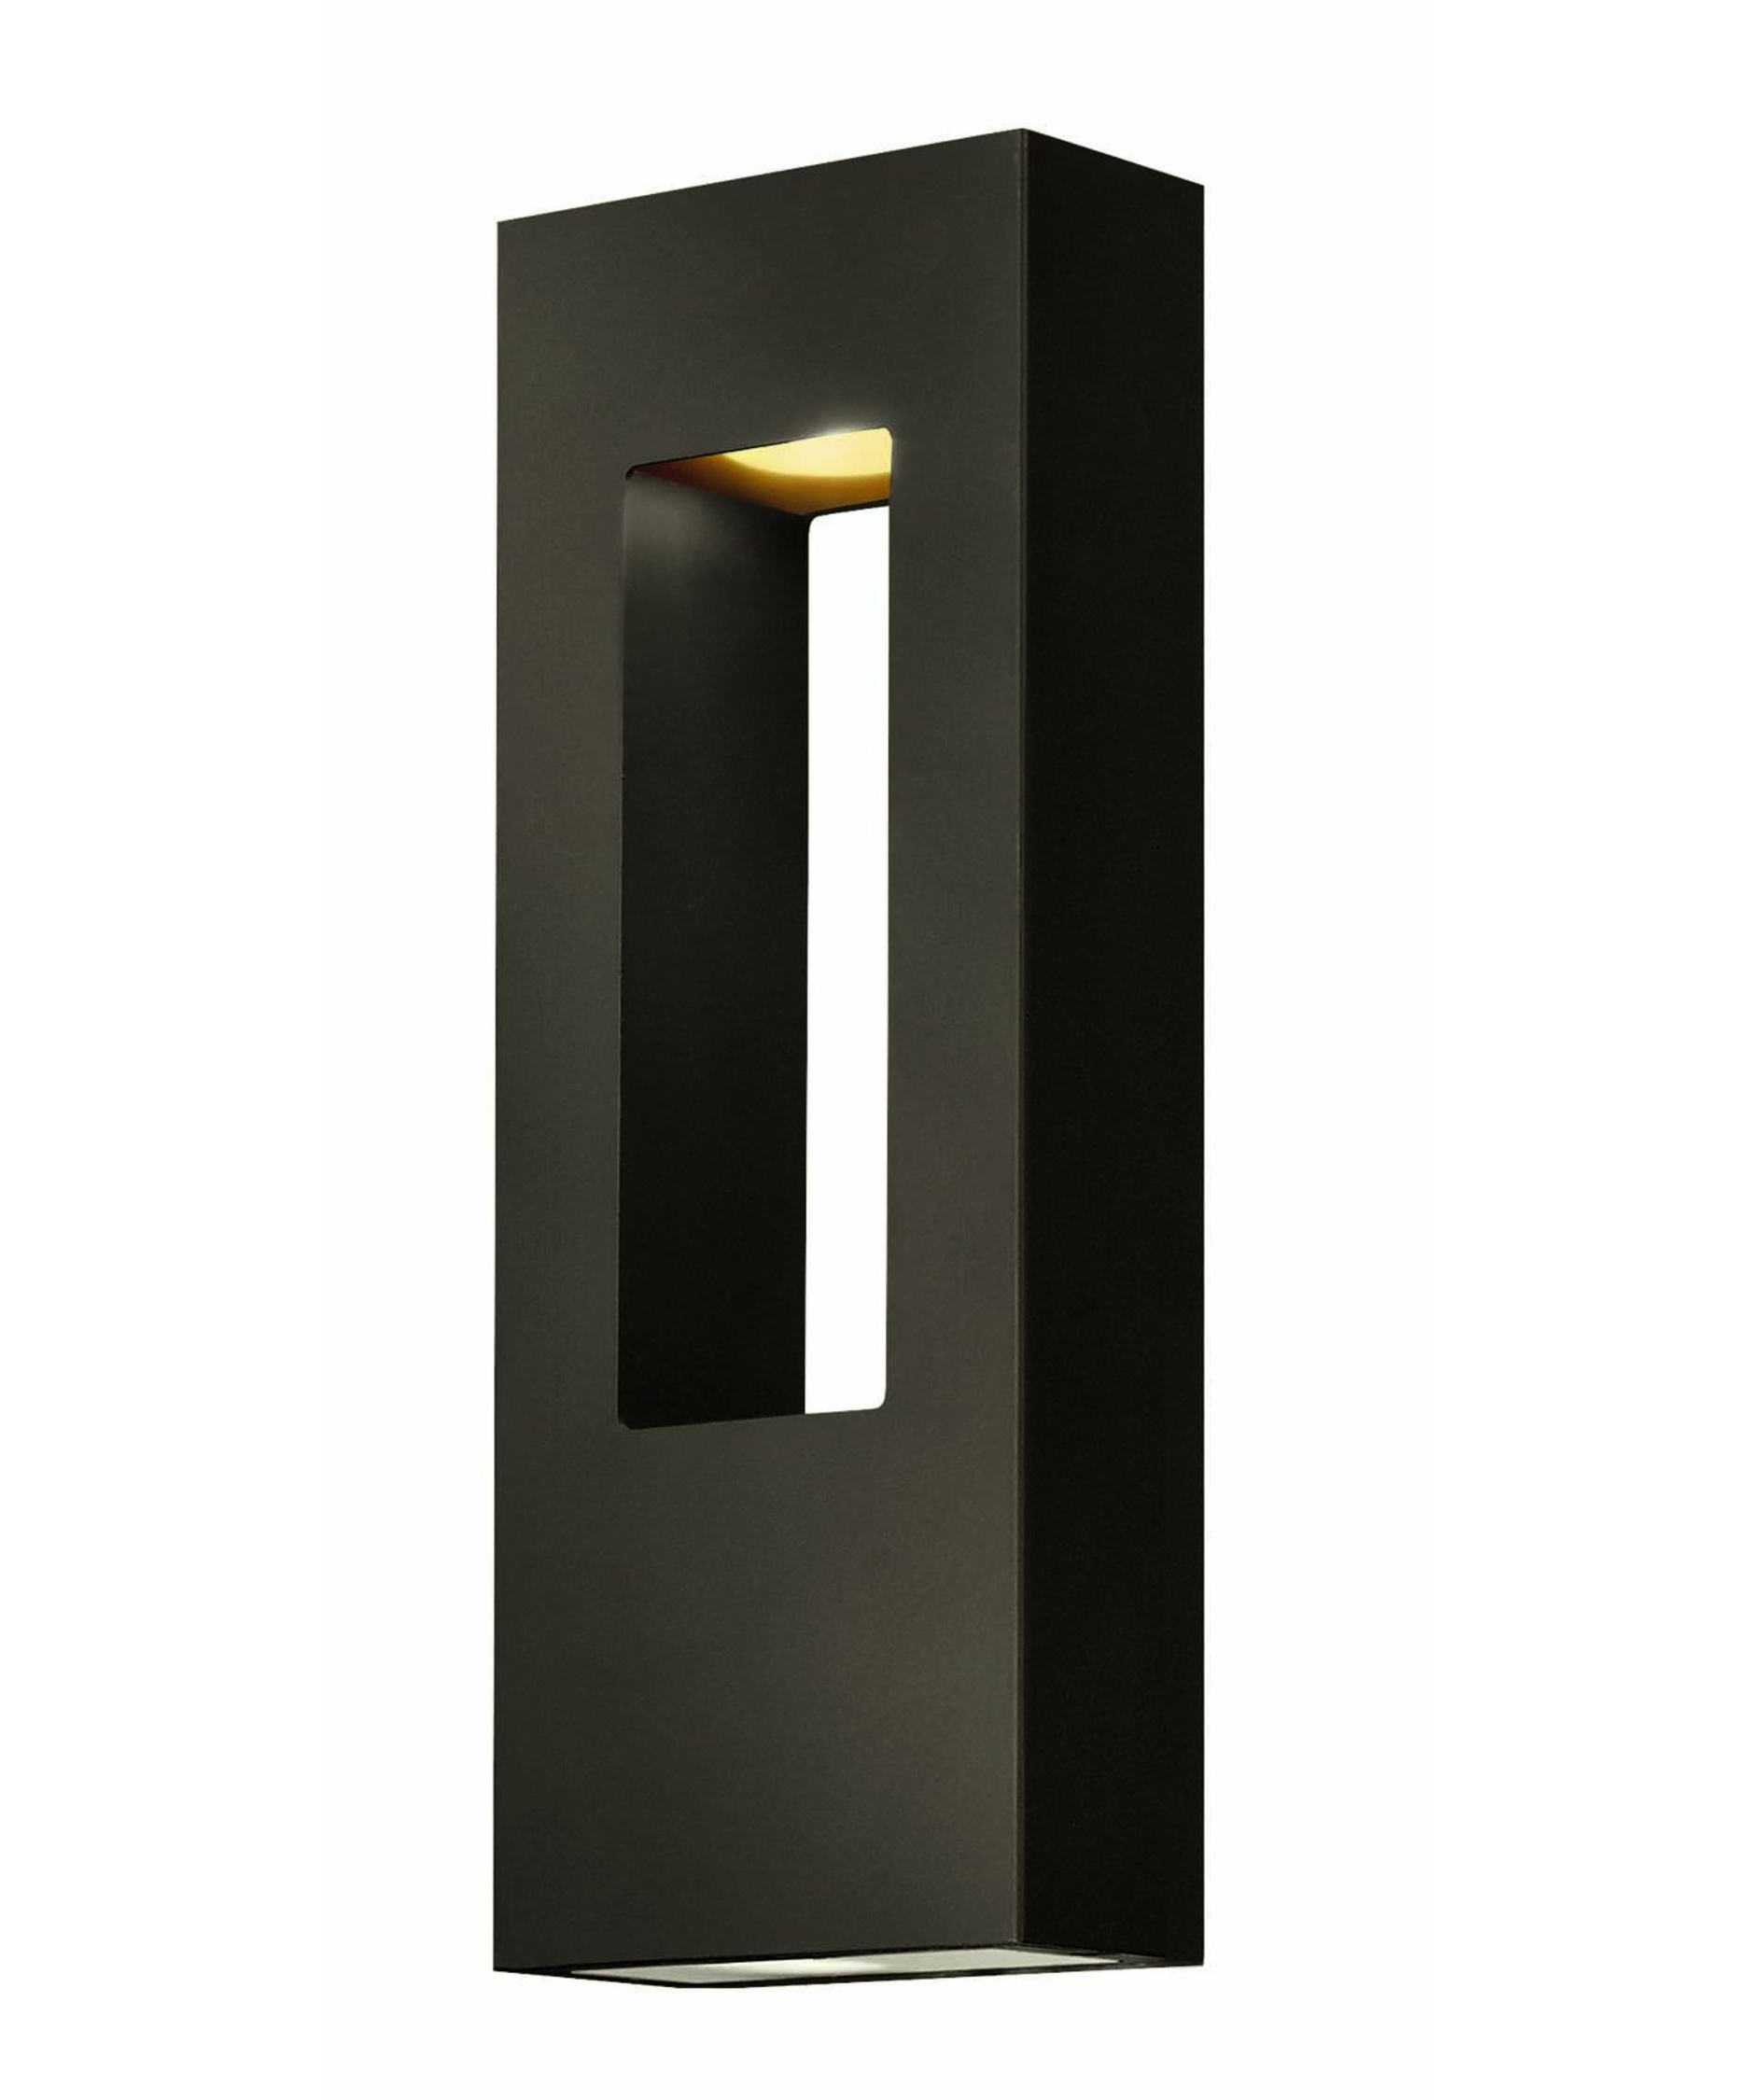 Most Popular Modern Outdoor Hinkley Lighting With Regard To Hinkley Lighting 1648 Atlantis 2 Light Outdoor Wall Light (View 6 of 20)